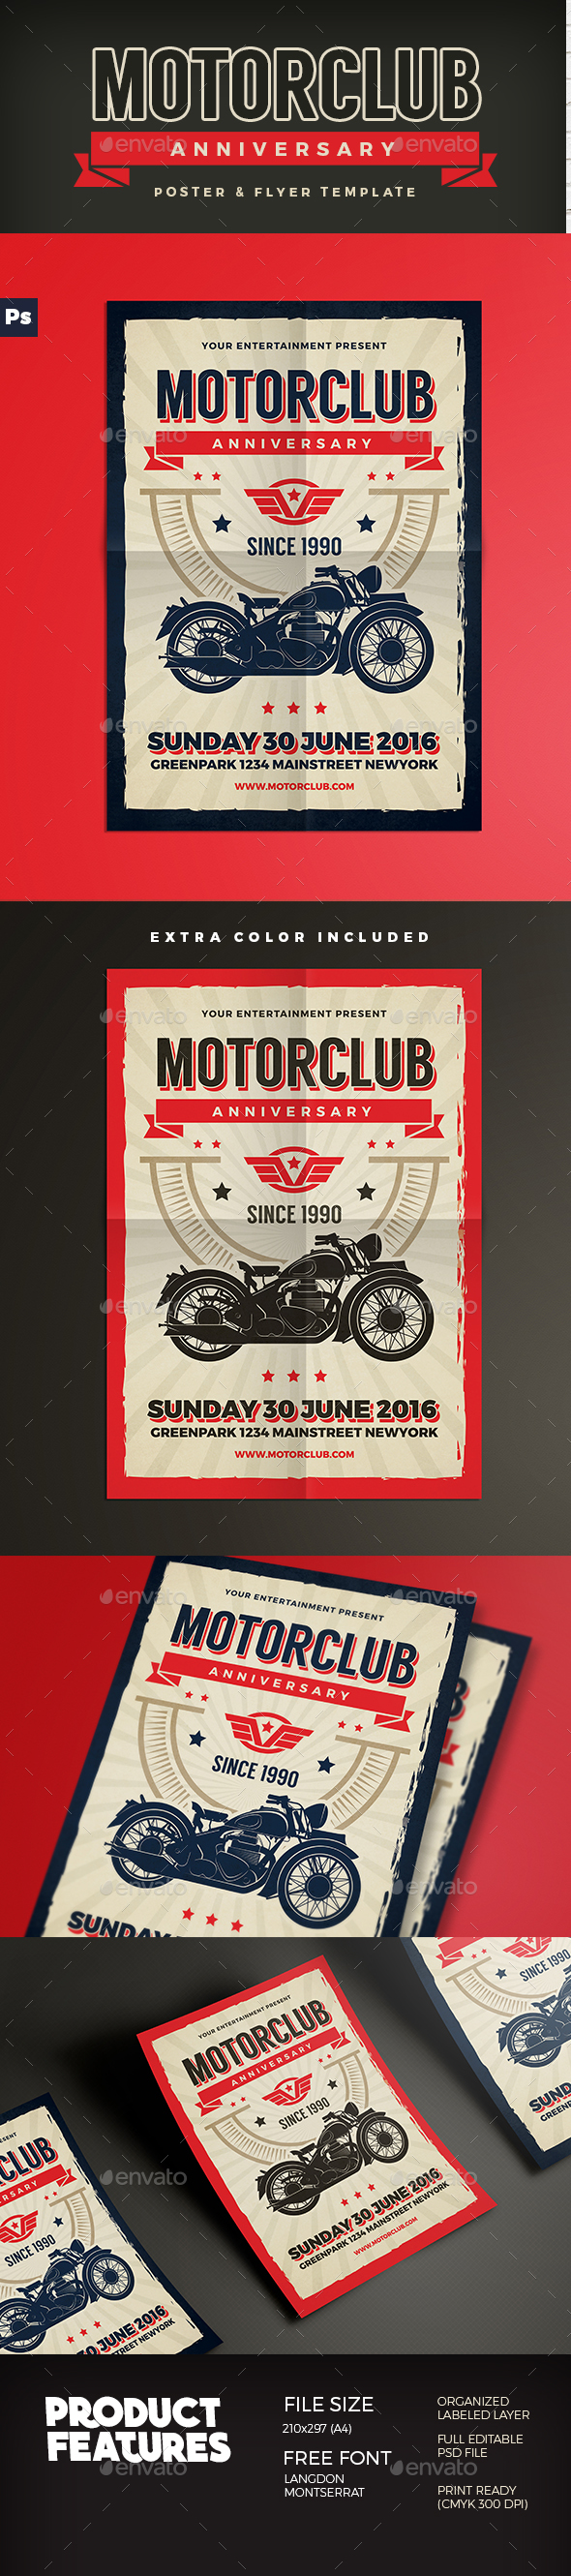 Motor Club Anniversary Event Flyer - Events Flyers